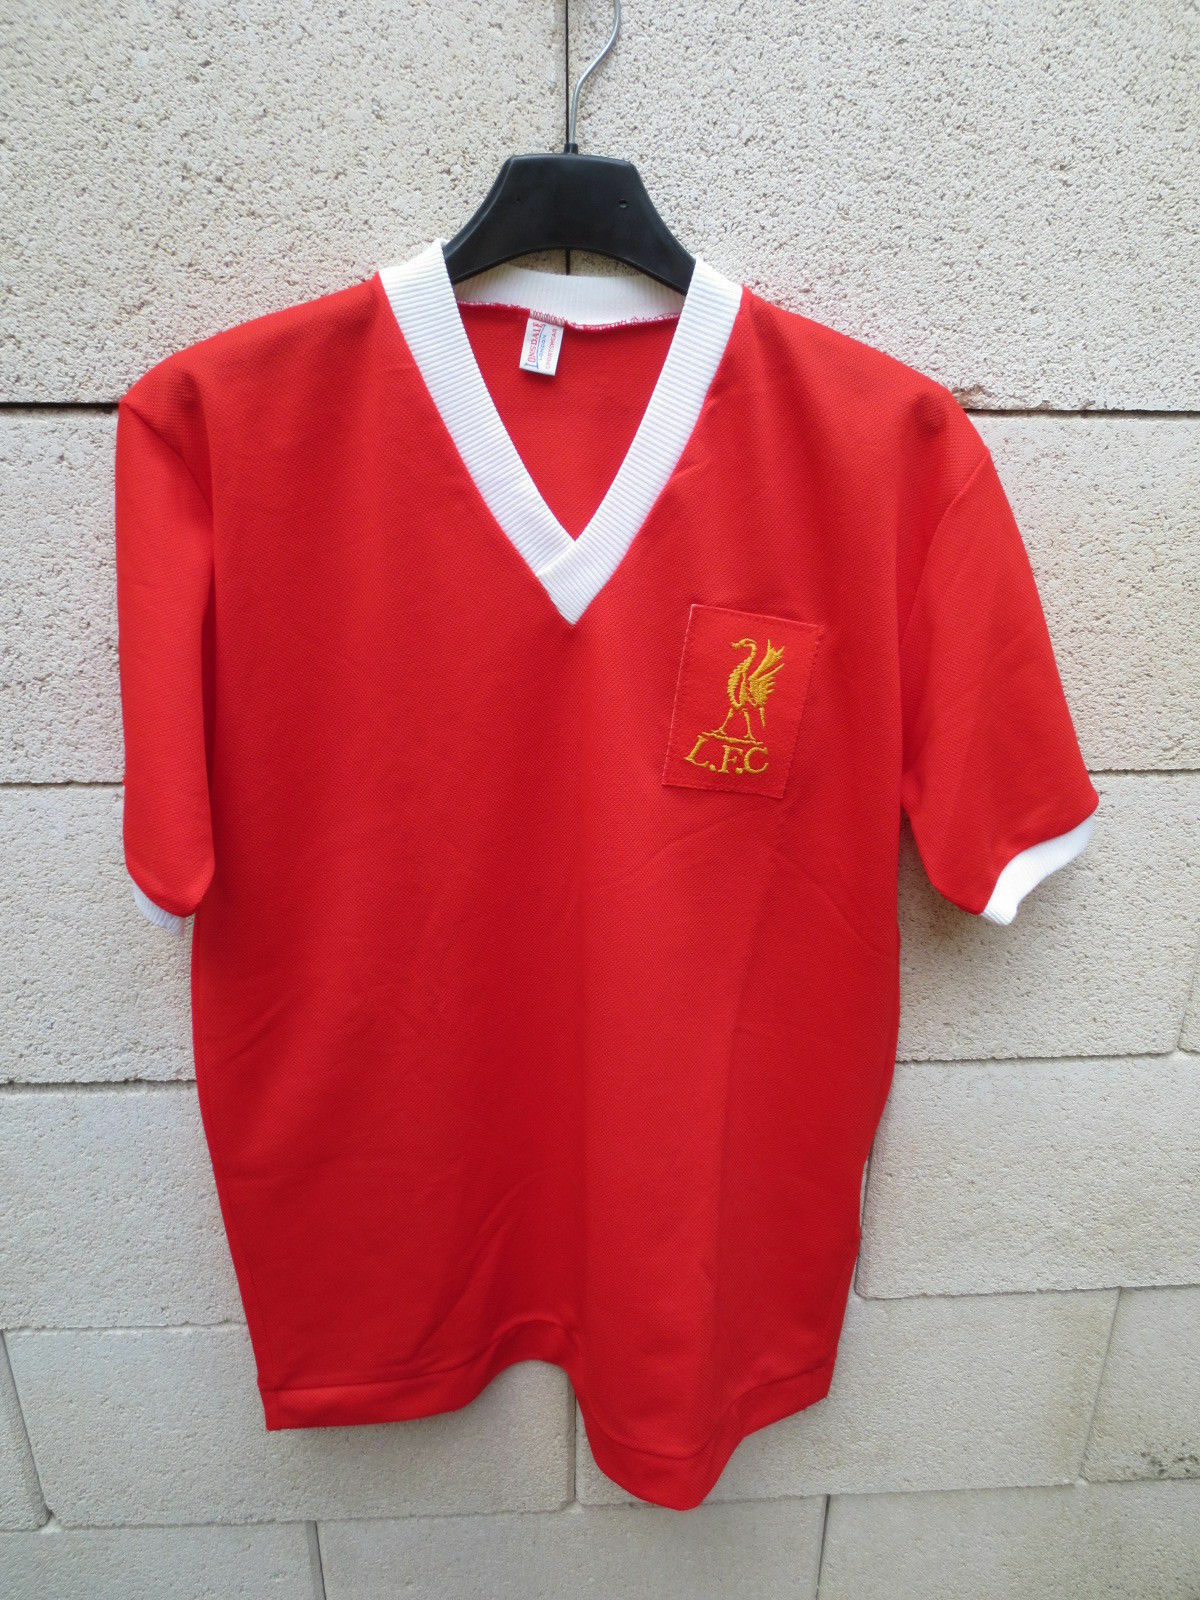 Maillot LIVERPOOL LONSDALE vintage shirt trikot ancien 70'S football 38  40 M